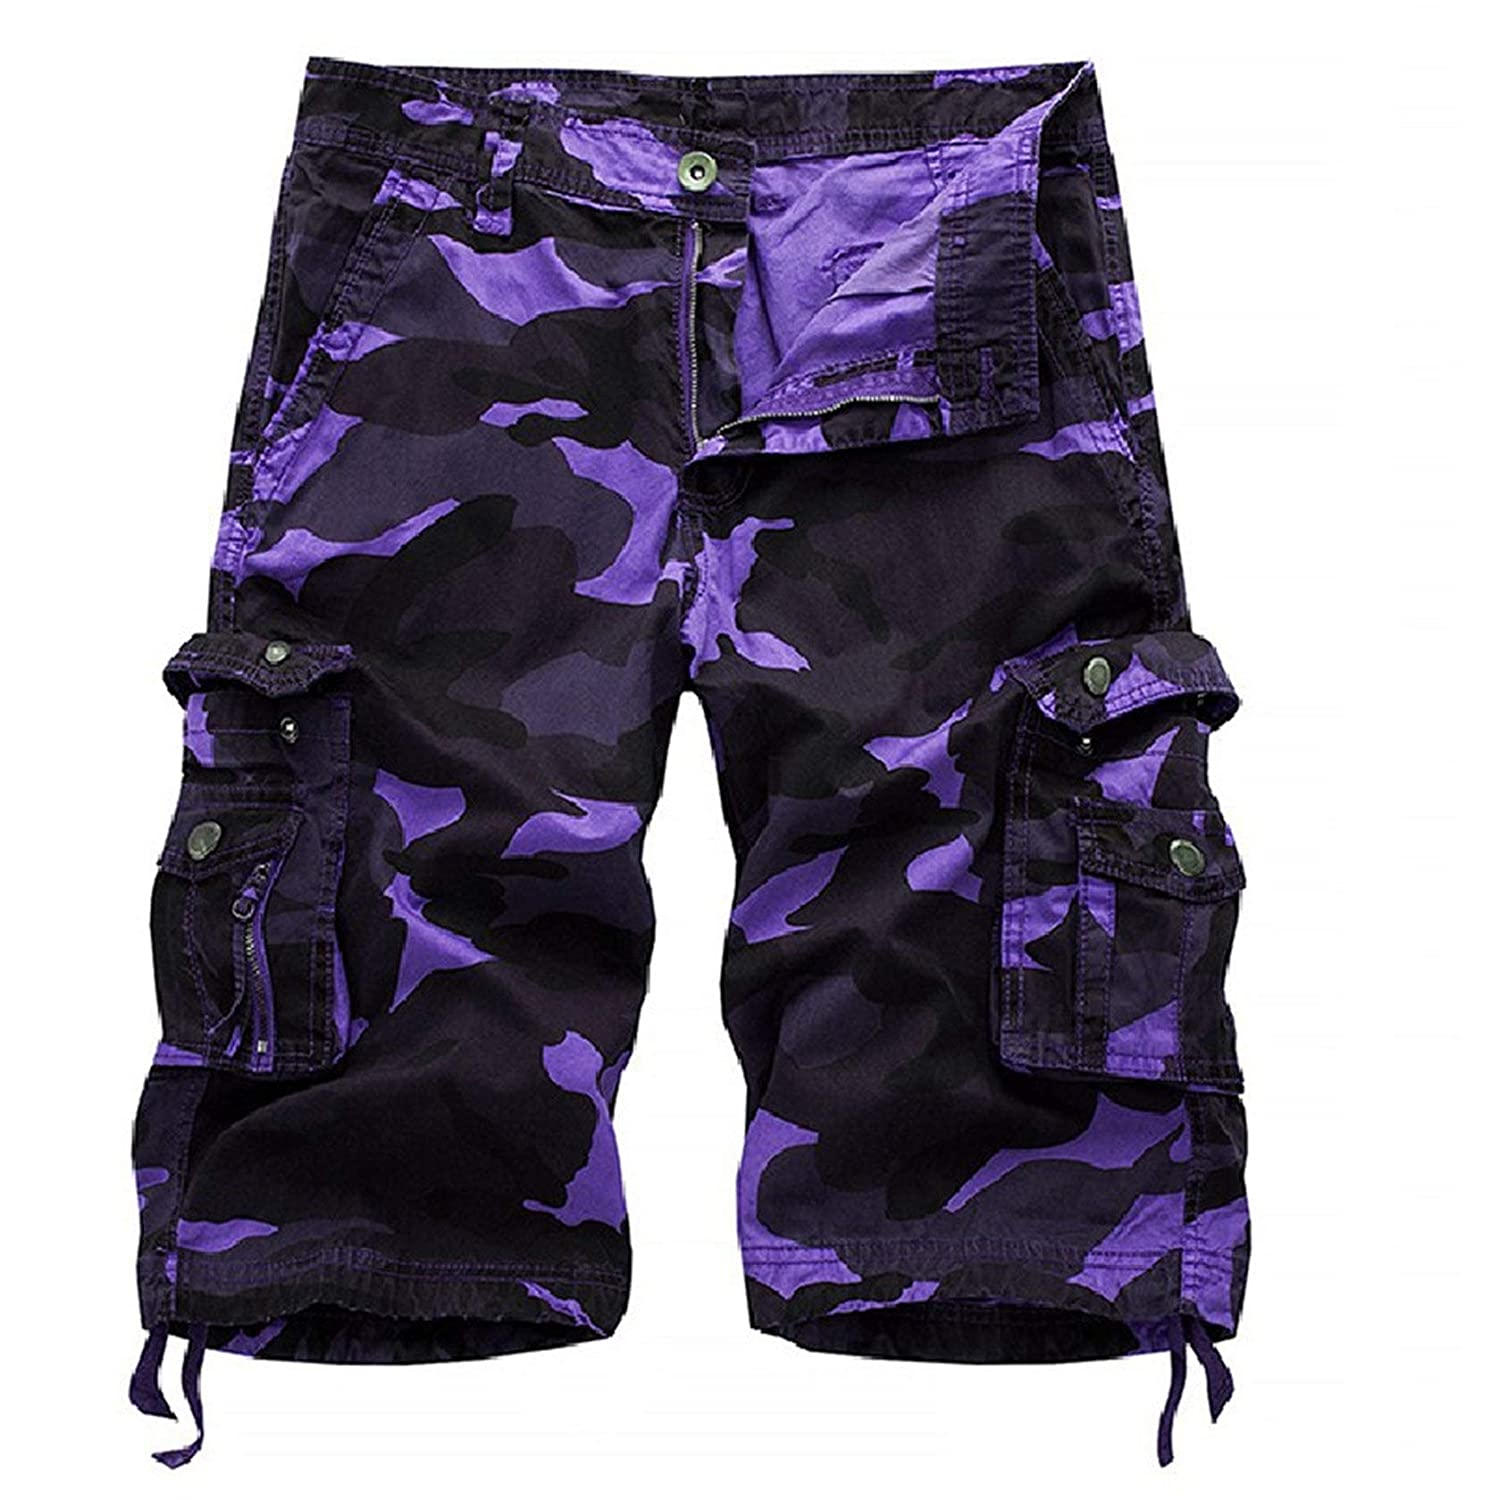 Mens Camo Cargo Shorts Relaxed Fit Multi-Pocket Outdoor Short Pants Camouflage Cargo Cotton Shorts (Purple,29)